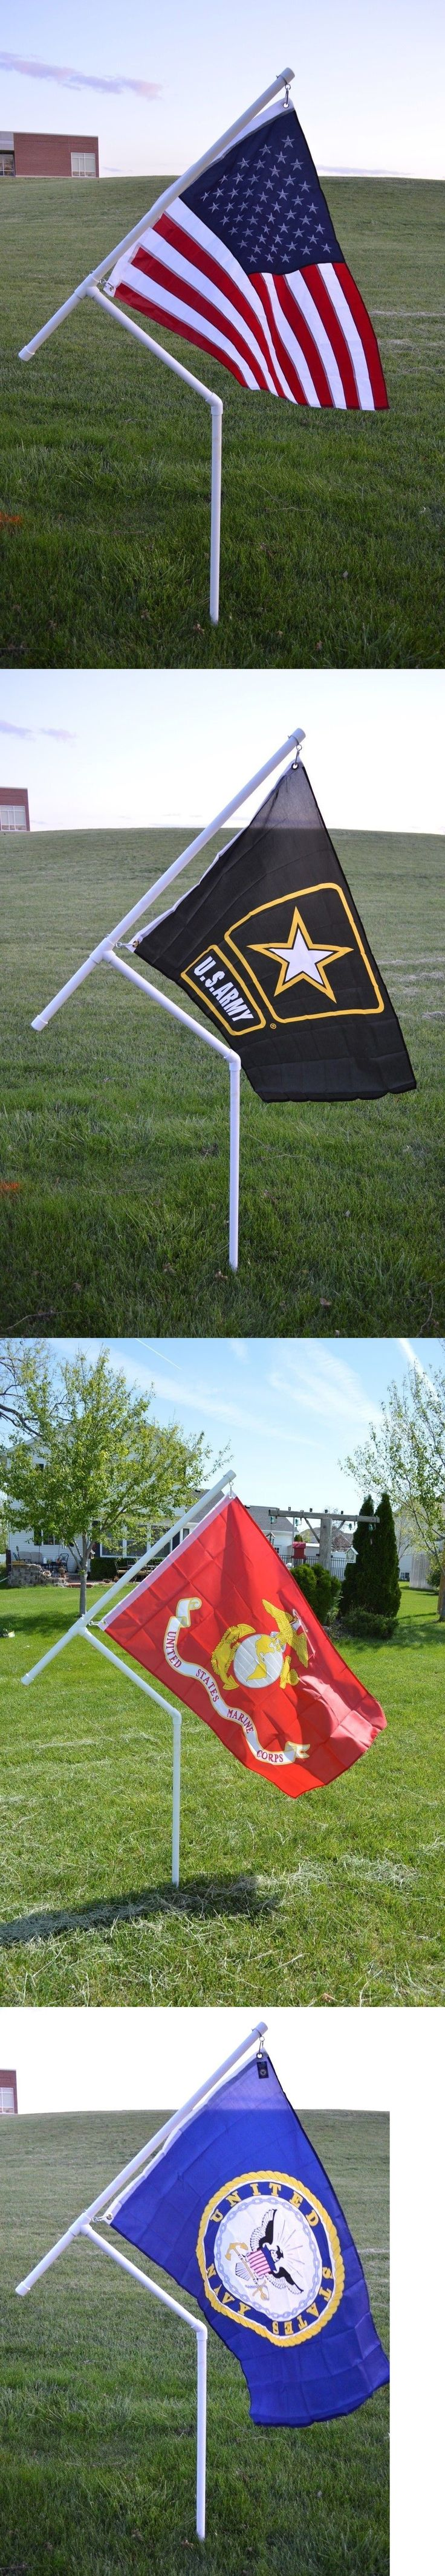 Details about spinner flag pole kit new 1 heavy duty pvc